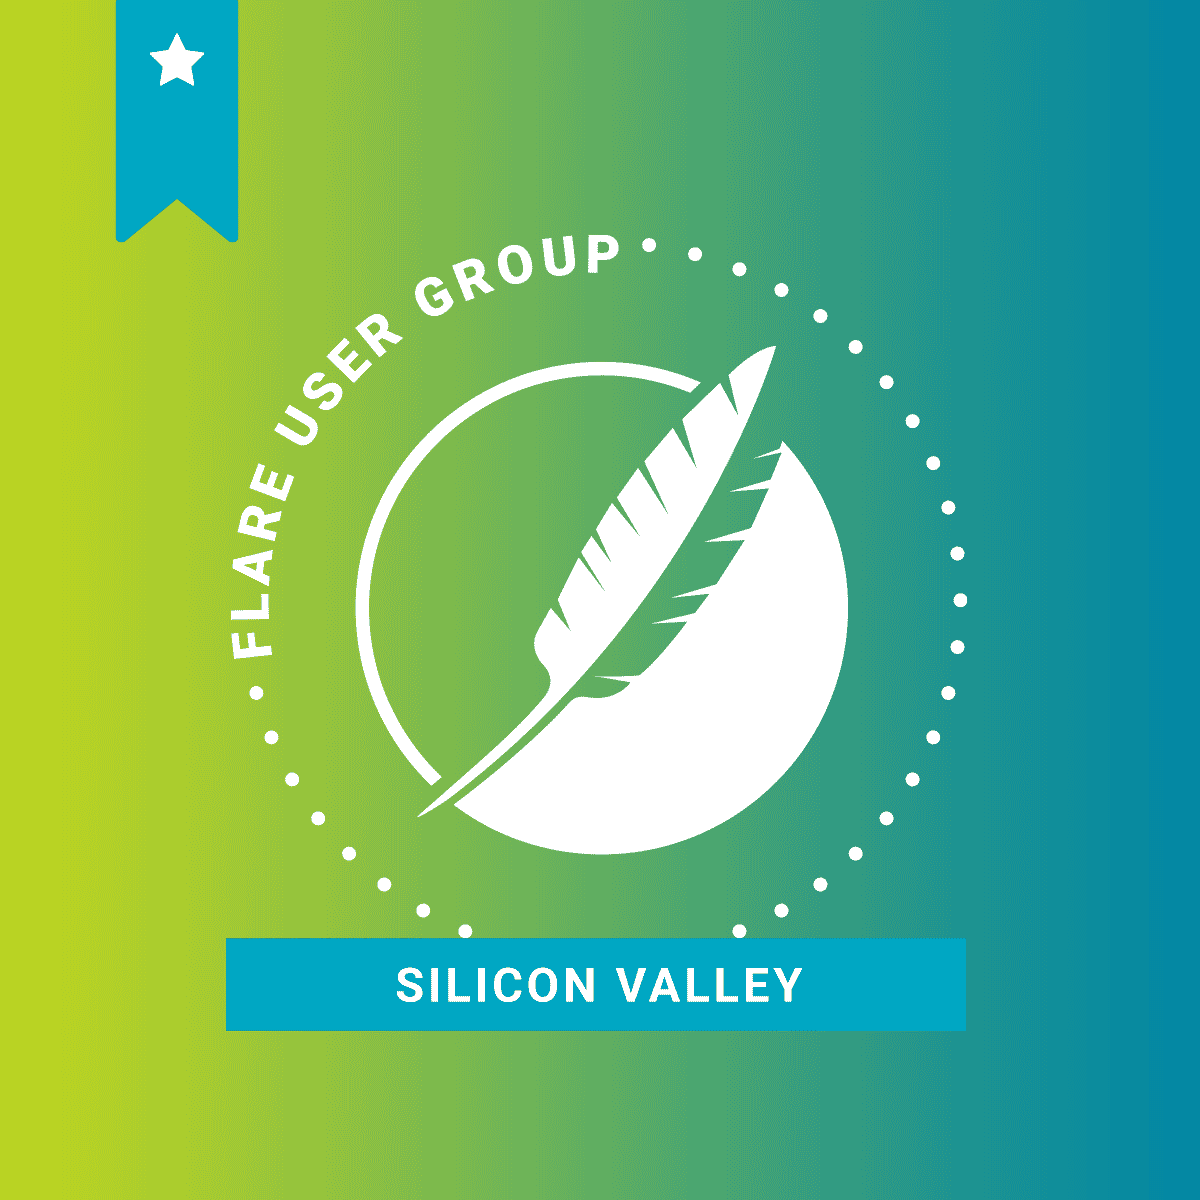 Silicon Valley MadCap Flare User Group